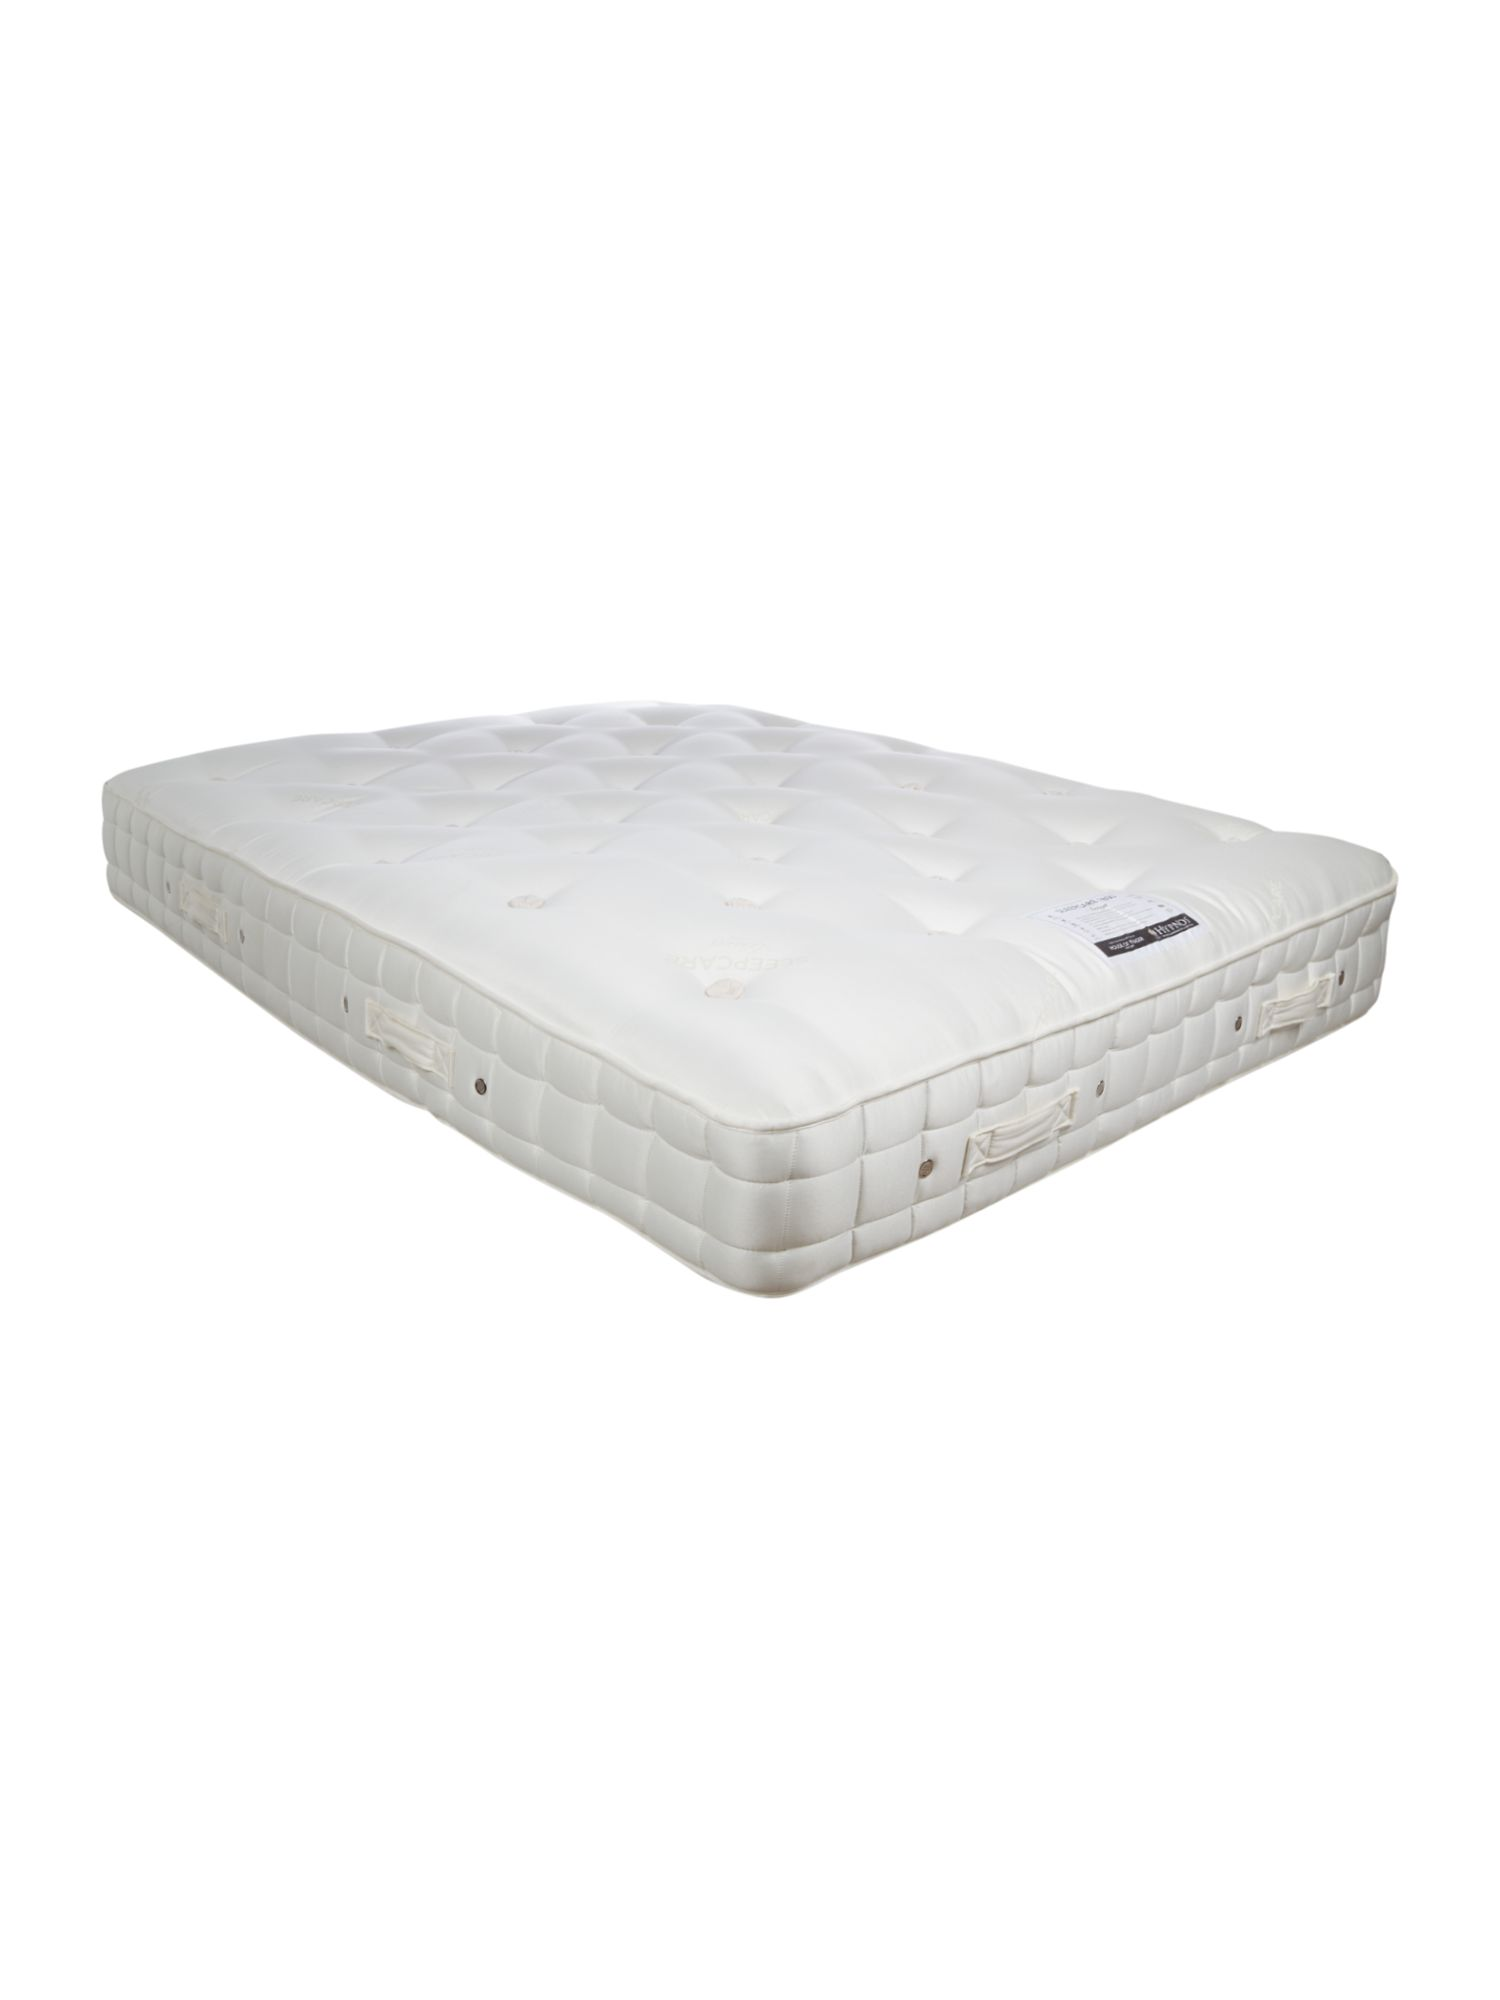 Medium Firm Mattress King Size Page 11 Furniture Buy Mattresses From Our Wide List On Bedroomo